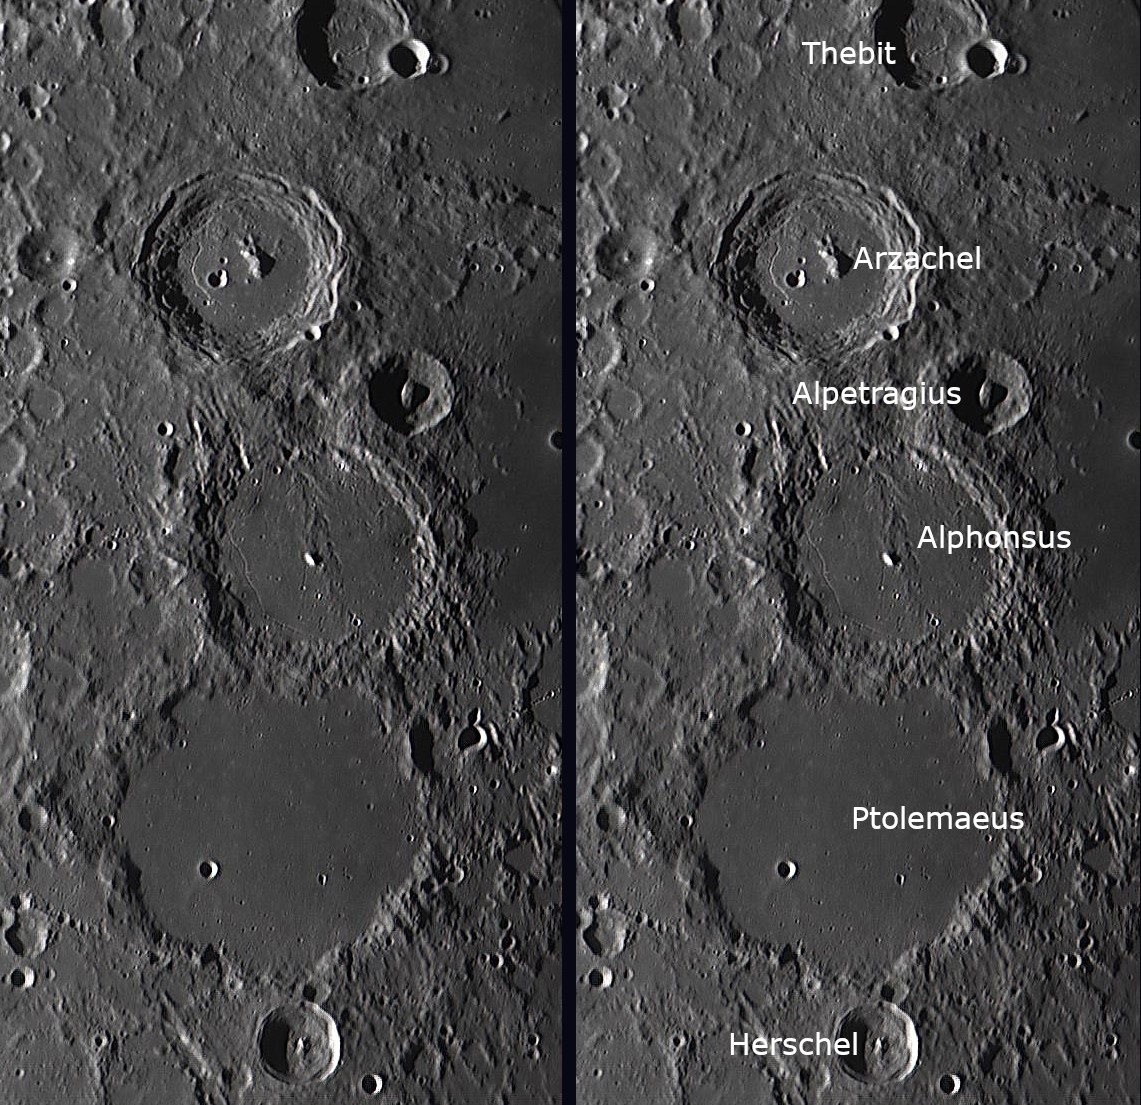 Lunar Crater Chain - Ptolemaeus, Alphonsus & Arzachel 2018-03-25 19.24 UT    Image by     Hugh Bellamy    Aberkenfig, South Wales  Lat 51.542164 Long -3.5934252  Skywatcher 254mm Newtonian Reflector, Tal 2x Barlow Lens, ZWO ASI 120MC Imager. Captured using Firecapture  A 3 pane mosaic of this well known lunar crater group.  Each pane processed with Registax 6 & G.I.M.P. Then stitched using Microsoft Image Composite Editor.  Another page from my observations log book. Best viewed in expanded mode.